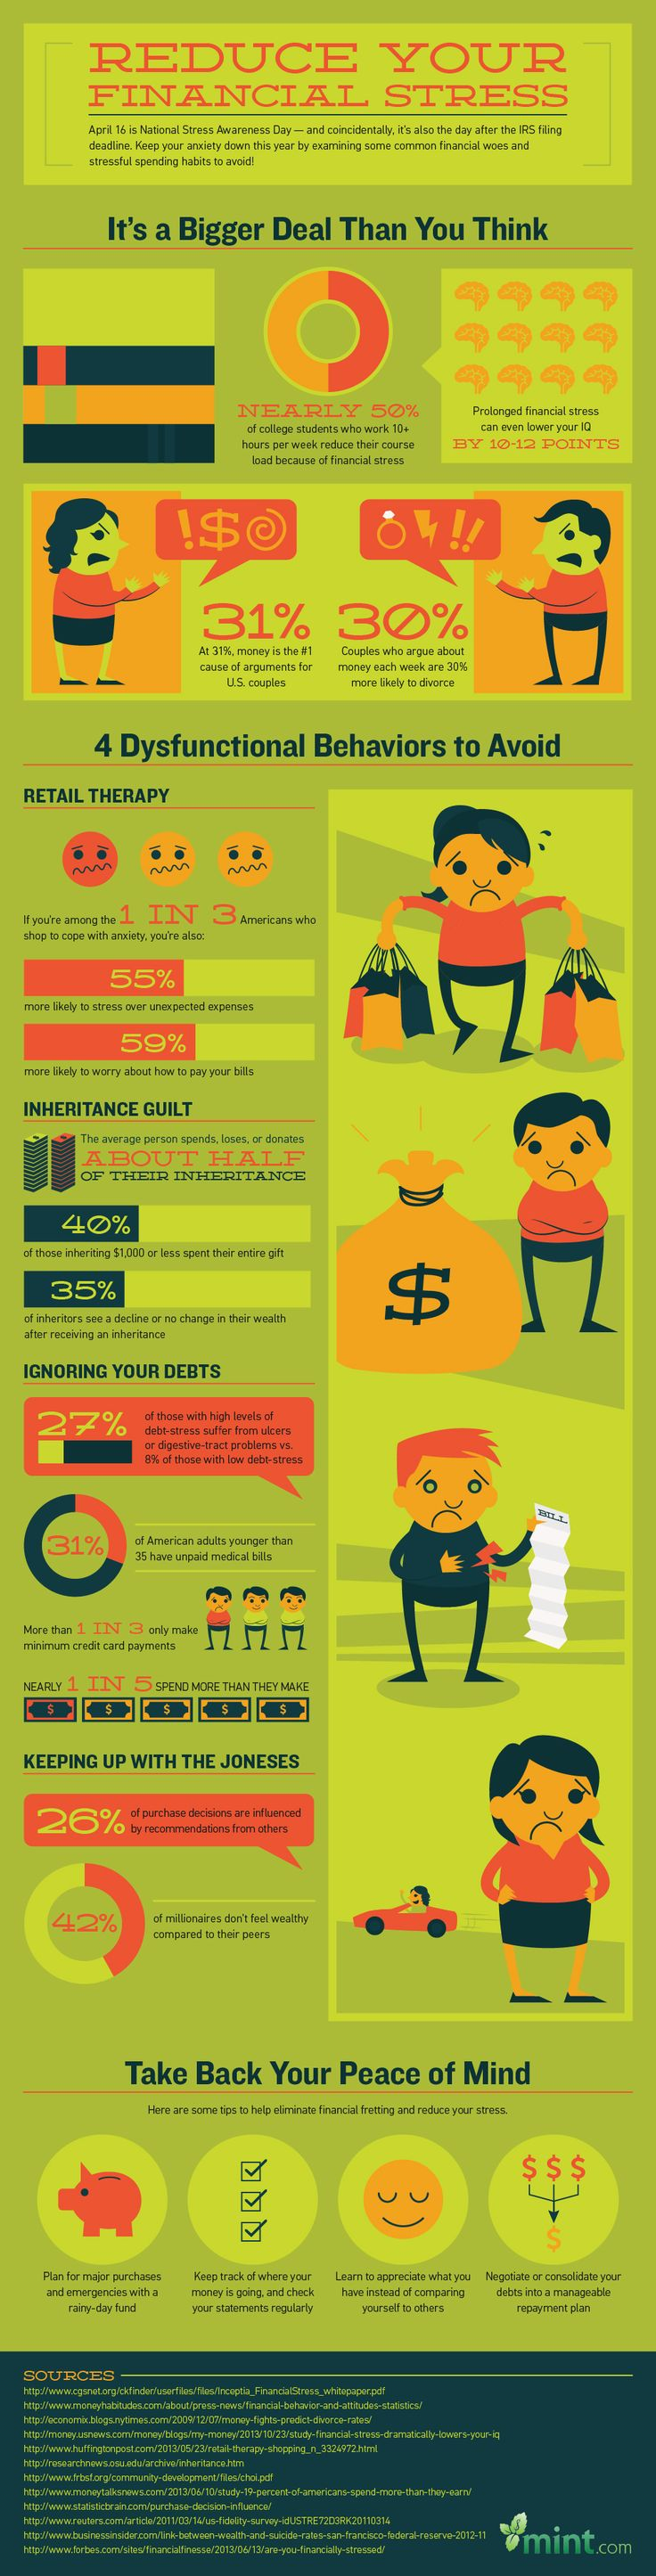 How to Worry Less and Save More: A Visual Guide to Reducing Financial Stress -Posted Apr 3, 2014 / By Mint.com